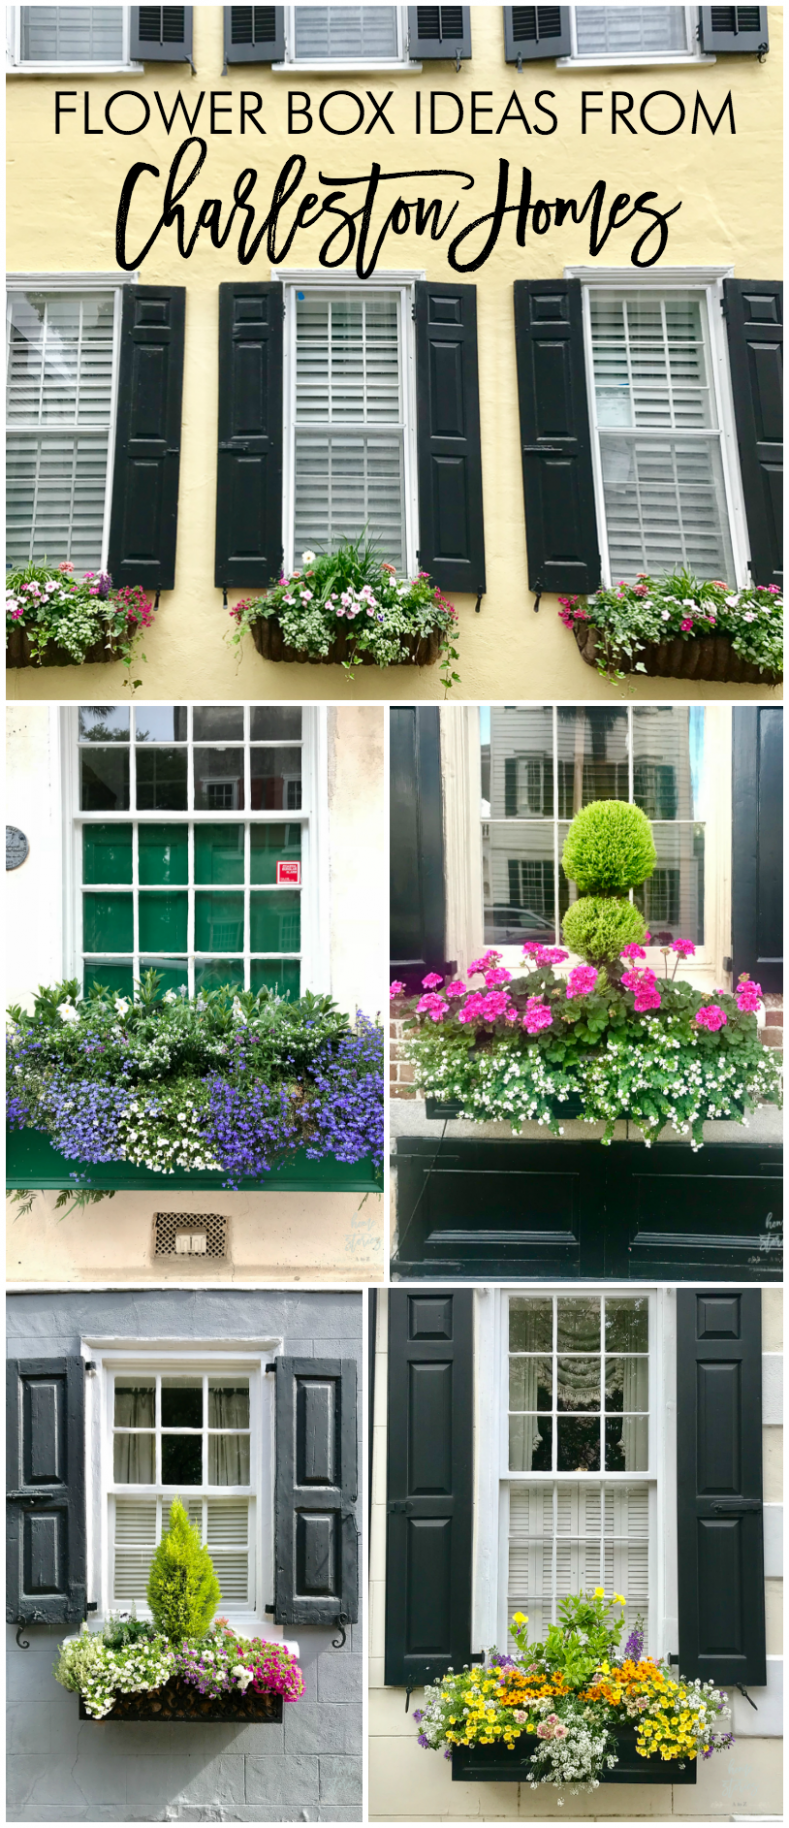 Flower Box Ideas: Window Flower Box Inspiration from Charleston Homes